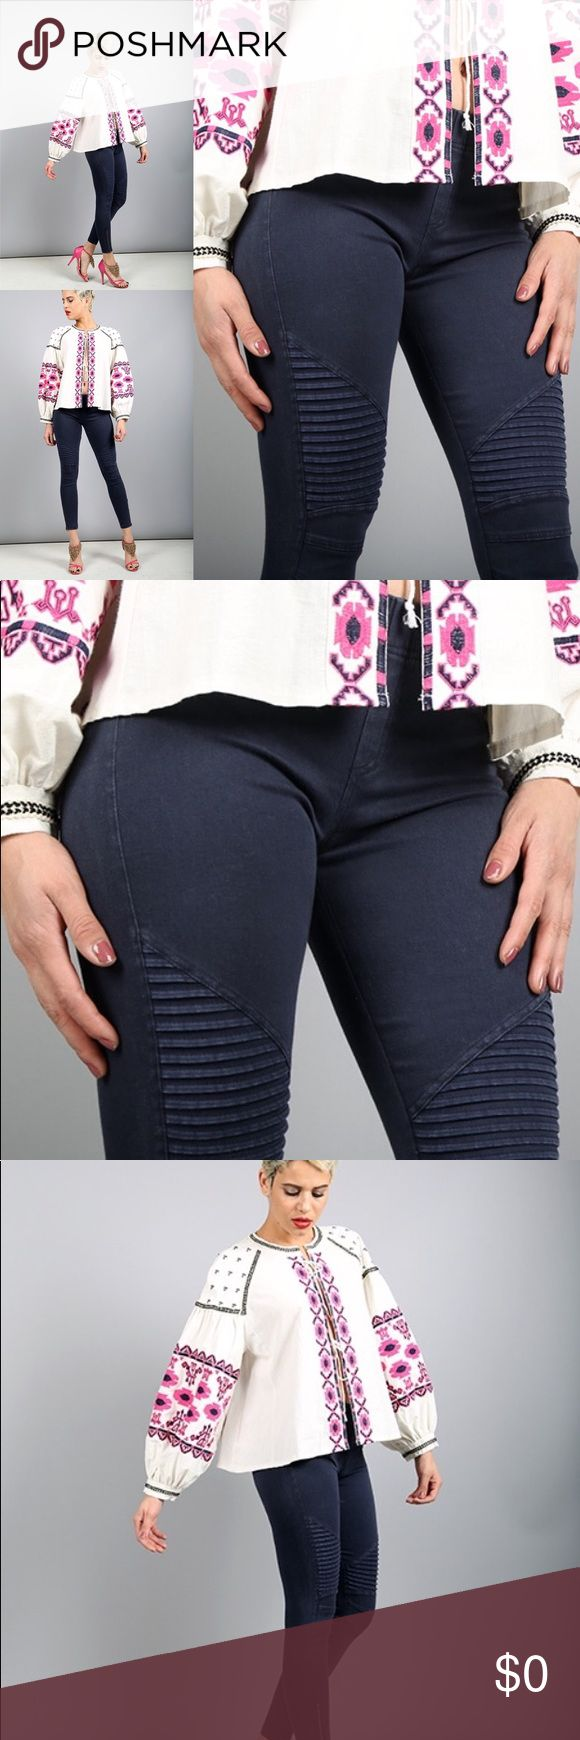 NEW ARRIVAL! Beulah Motto Jeggings (Black) Moto jeggings have ankle zipper detail and a thick elastic waistband. Great fit and good stretch with unique ribbed detail on the knee. Each color variation is different, as they are hand-dyed and each production is different. Please see last picture for the actual pant color.   97% COTTON, 3% SPANDEX Pants